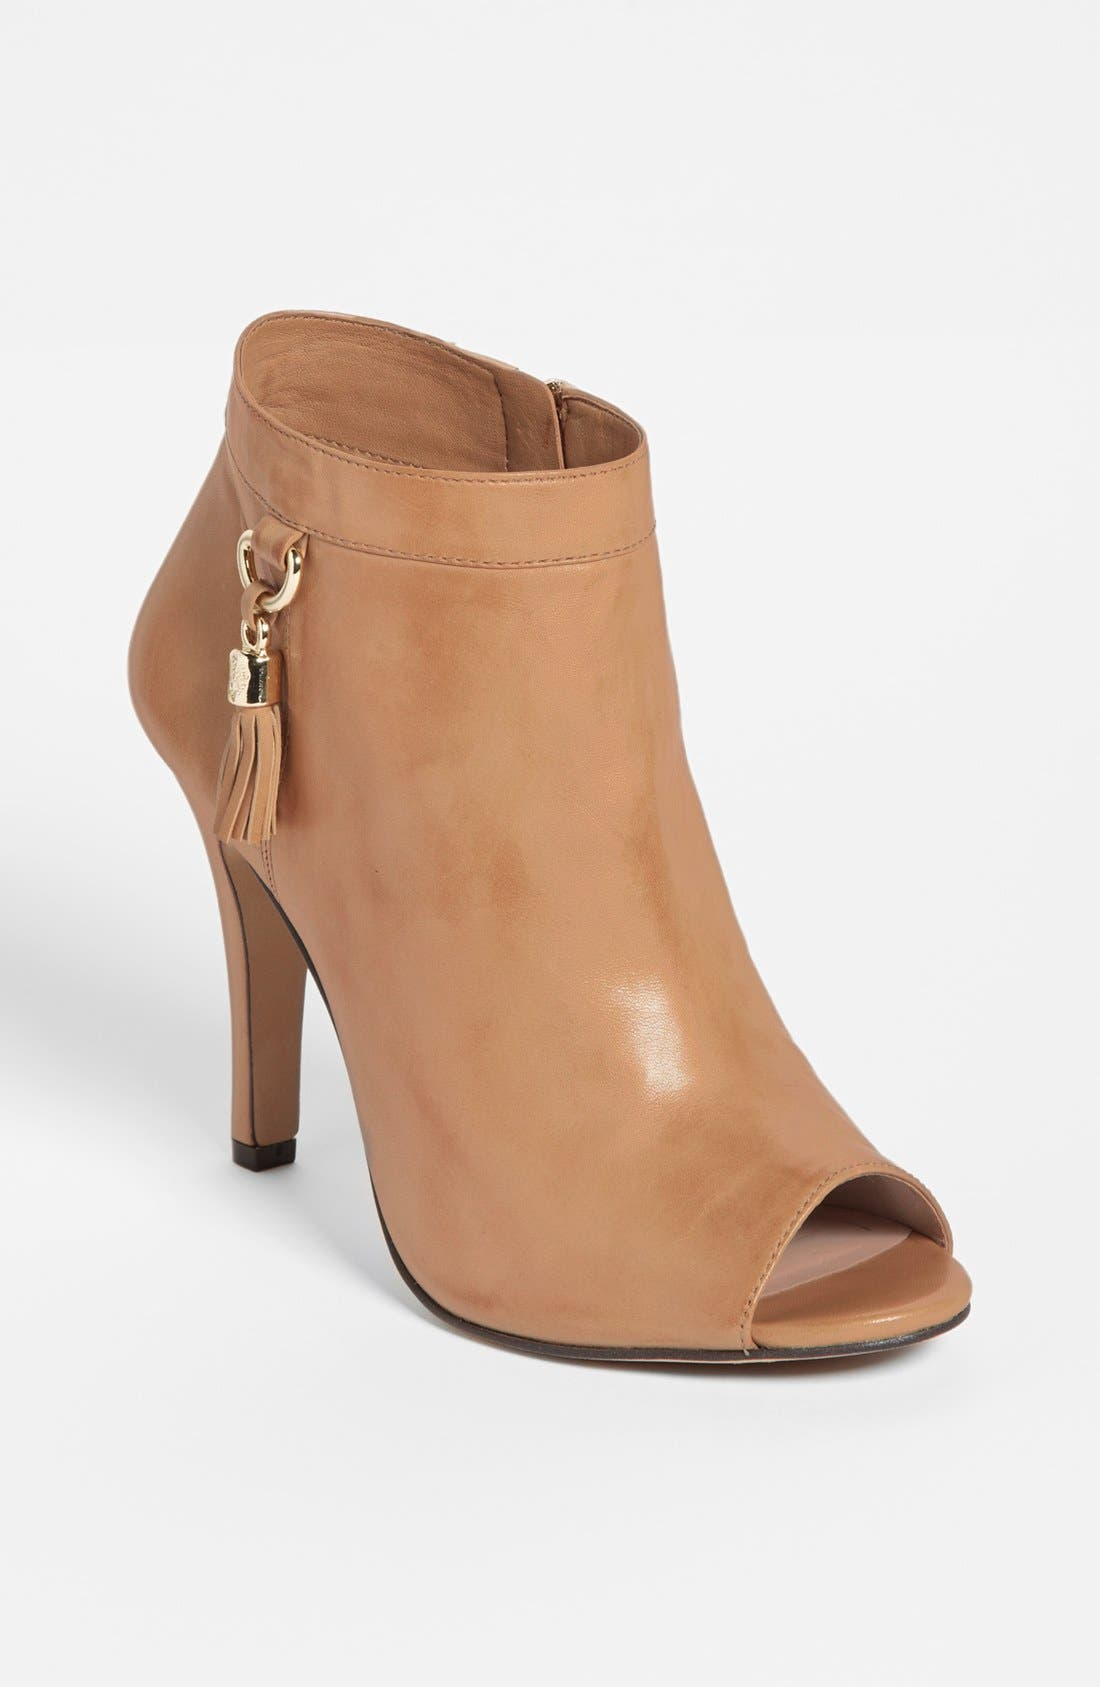 Alternate Image 1 Selected - Vince Camuto 'Kevia' Bootie